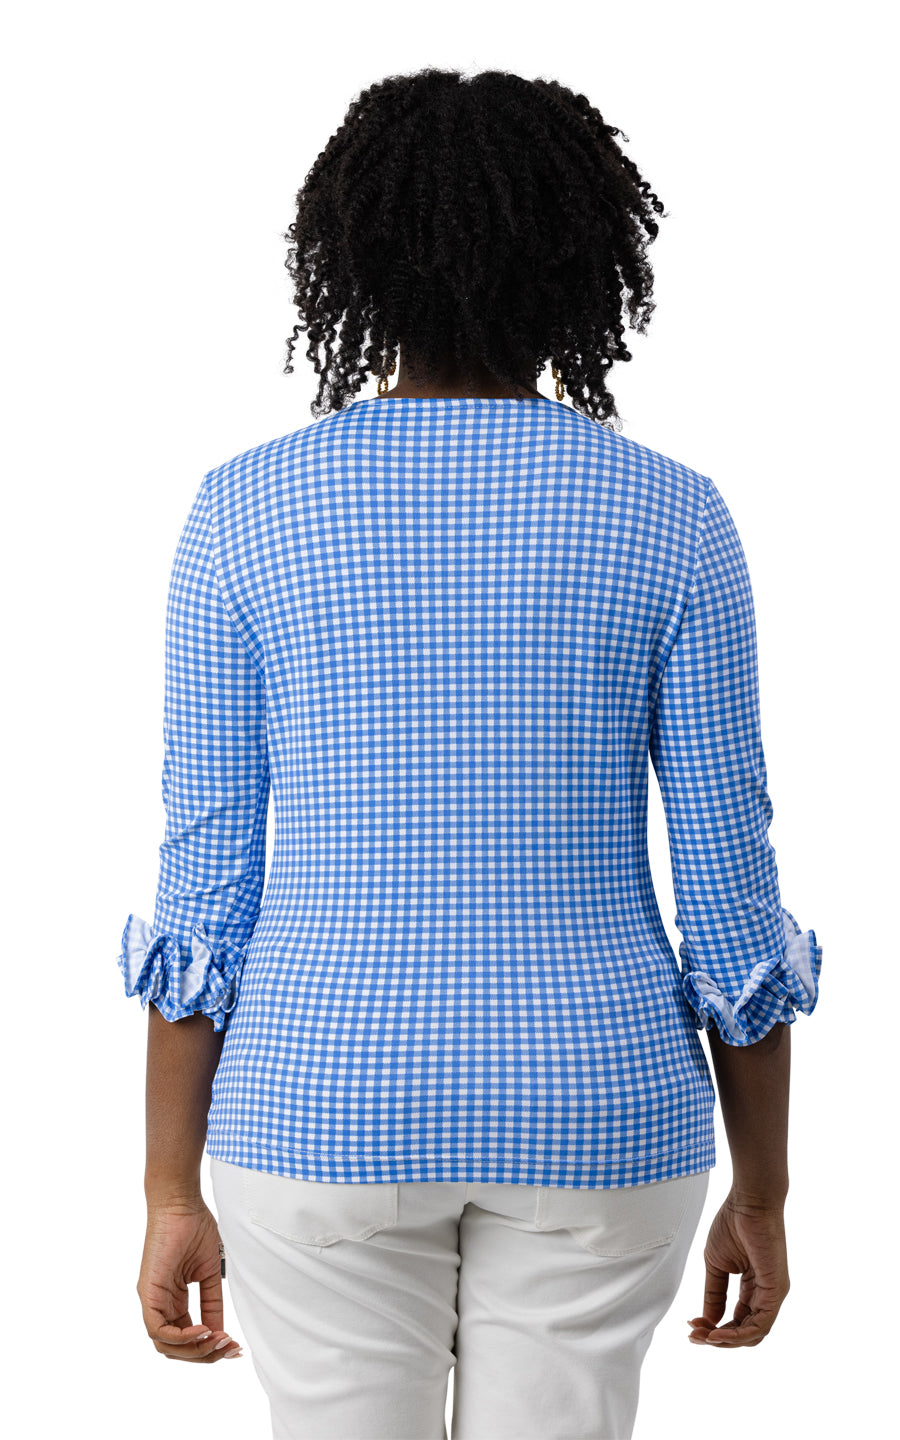 Caroline Top - Regatta Blue Small Check